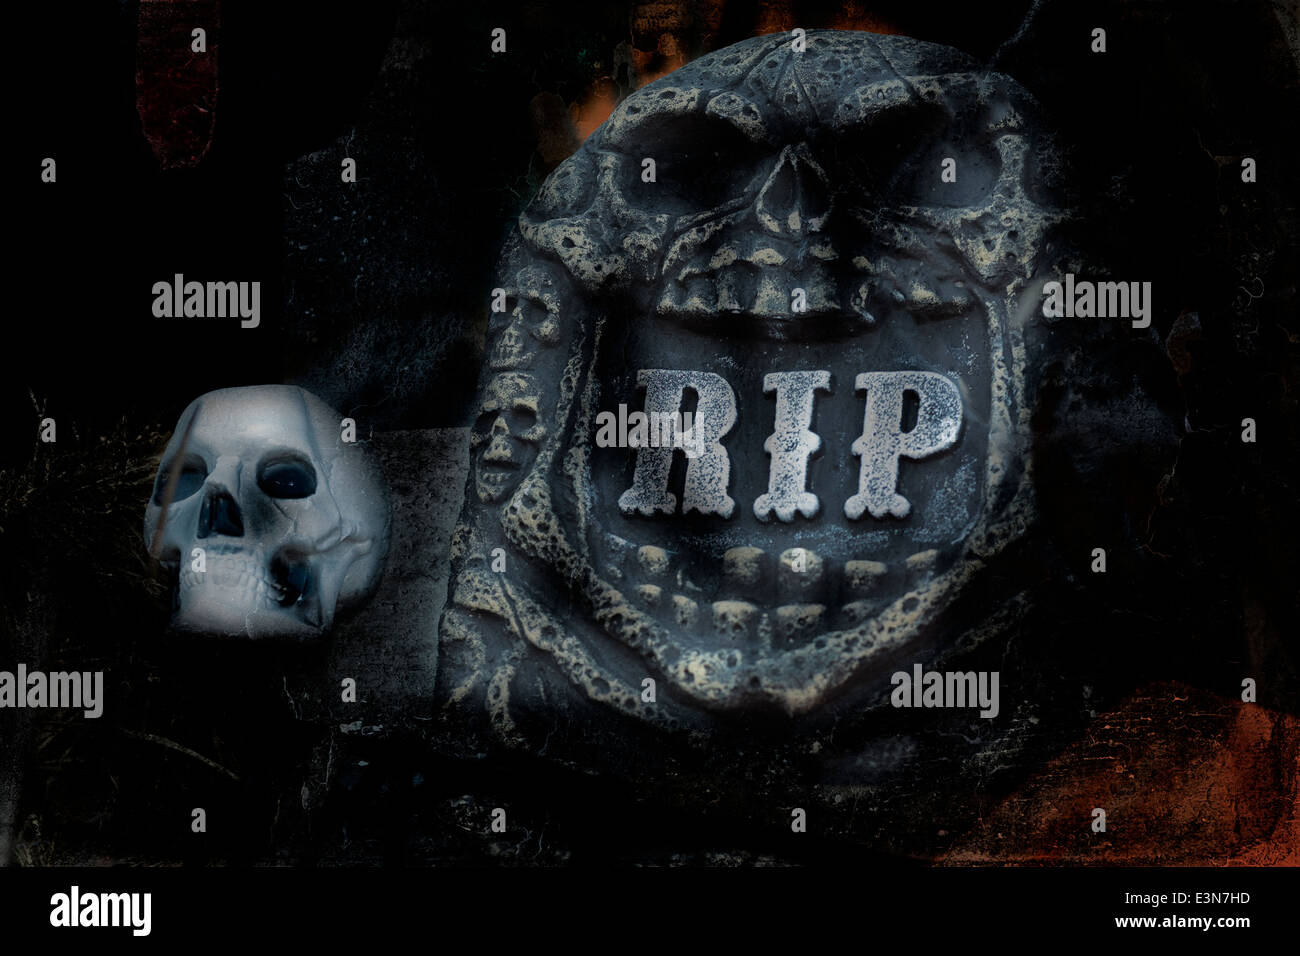 Halloween. Painterly grunge image of a graveyard headstone and skull. - Stock Image